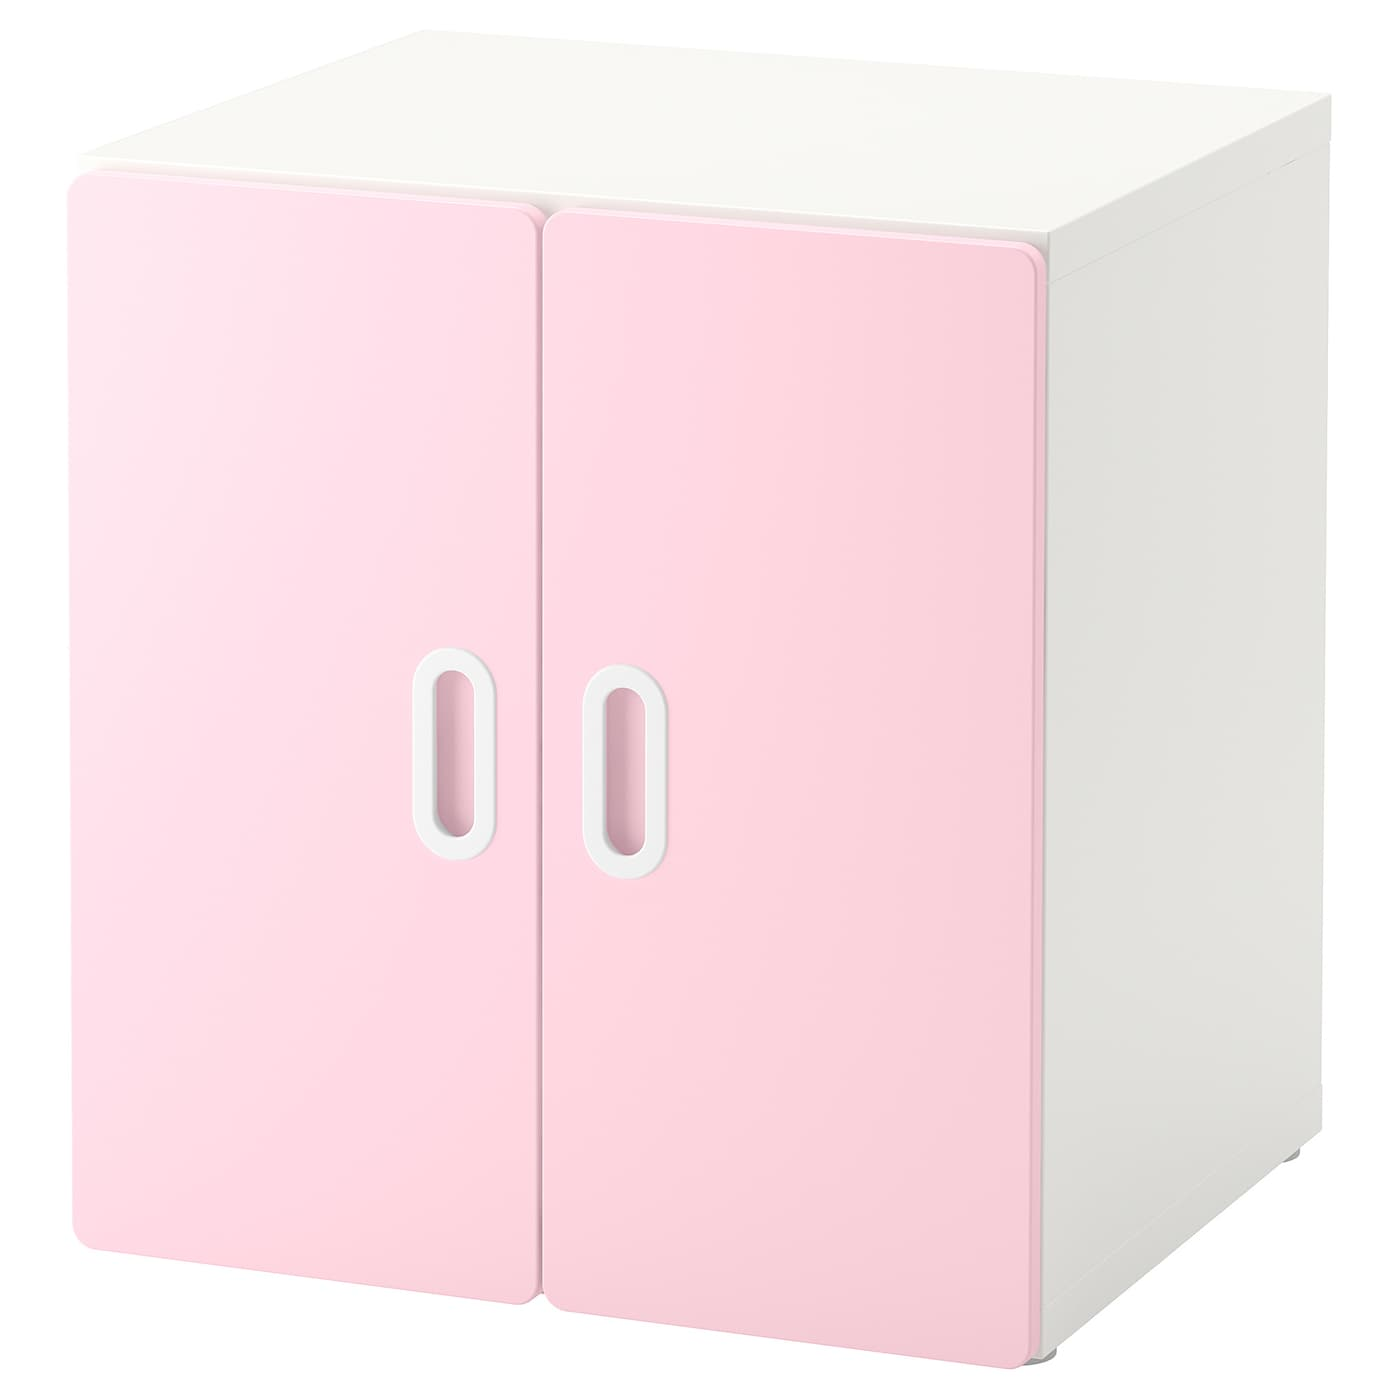 IKEA FRITIDS/STUVA cabinet Can stand on the floor or be hung on the wall.